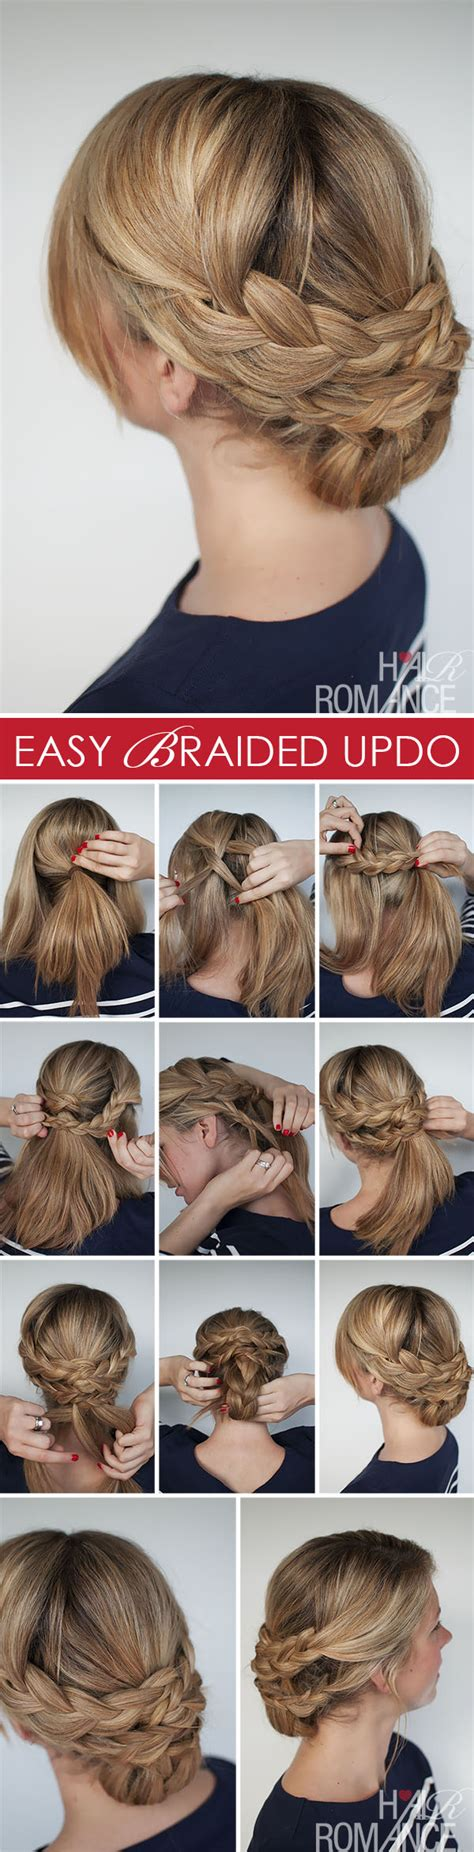 how to do a easy hairstyle hairstyle how to easy braided updo tutorial hair